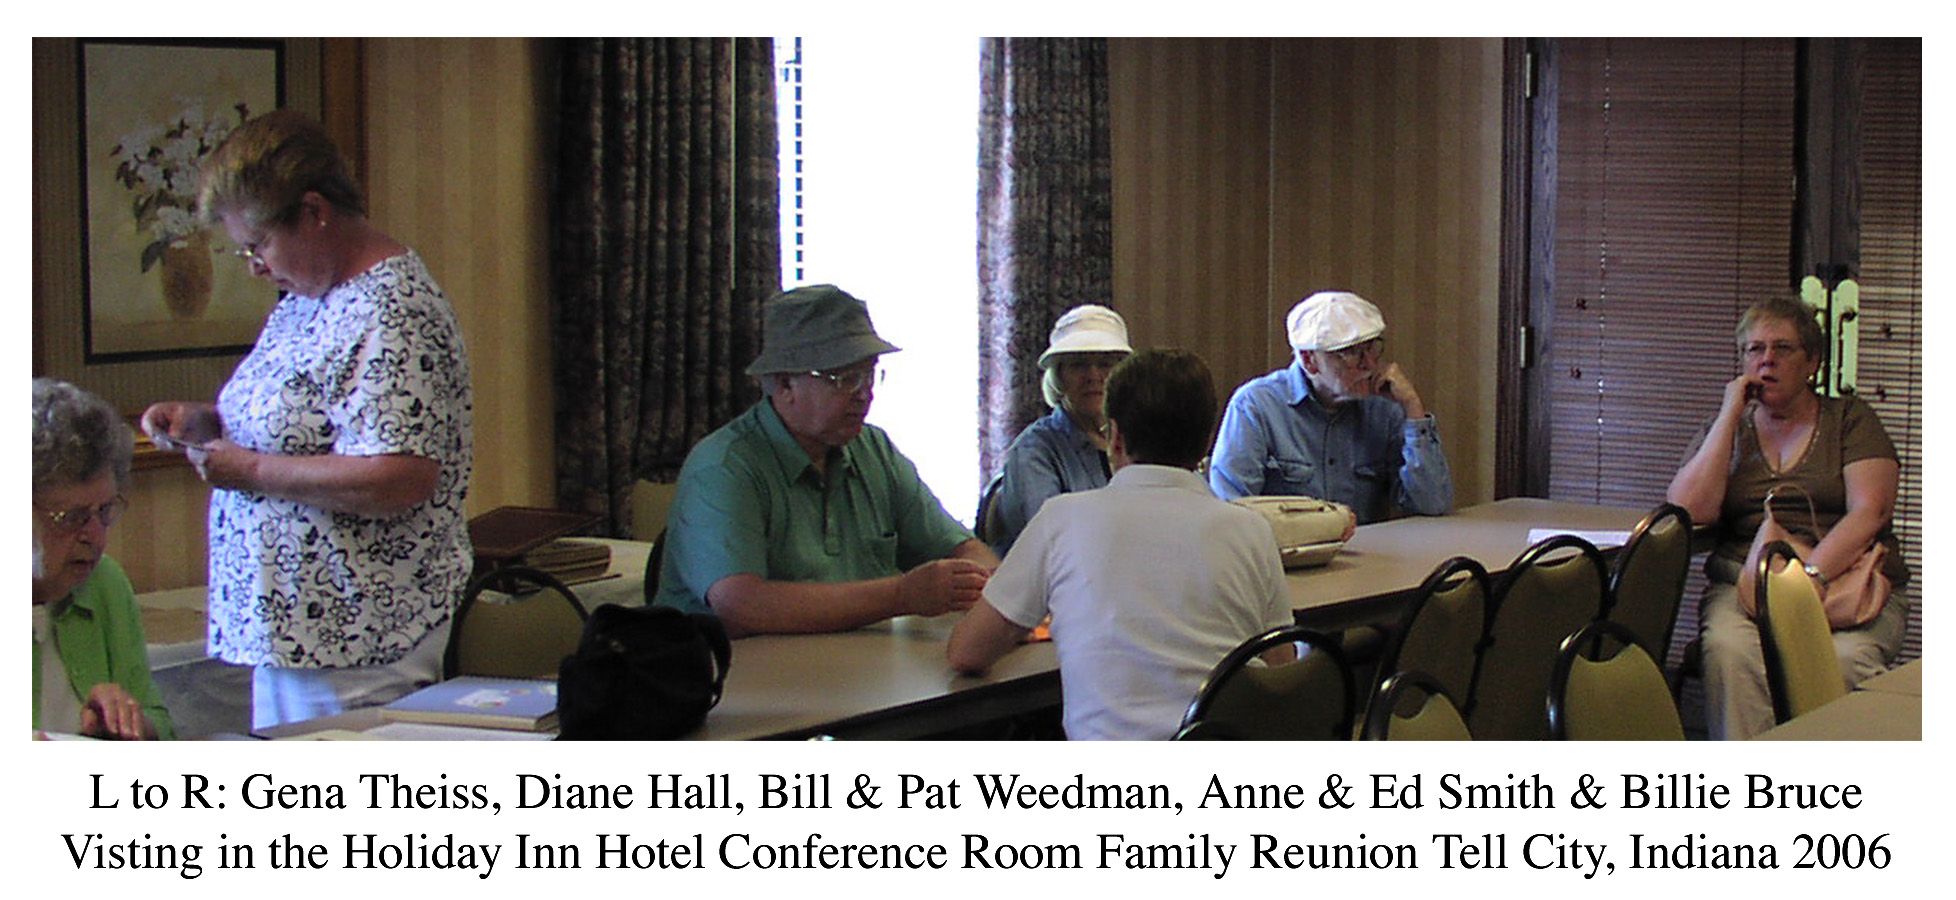 Indiana perry county bristow - Those In Attendants At This Years Meeting Were Billie And Jim Bruce Jeff And Jane Weedman Kati Weedman Alma Ford Carl And Carolyn Weedman Springer